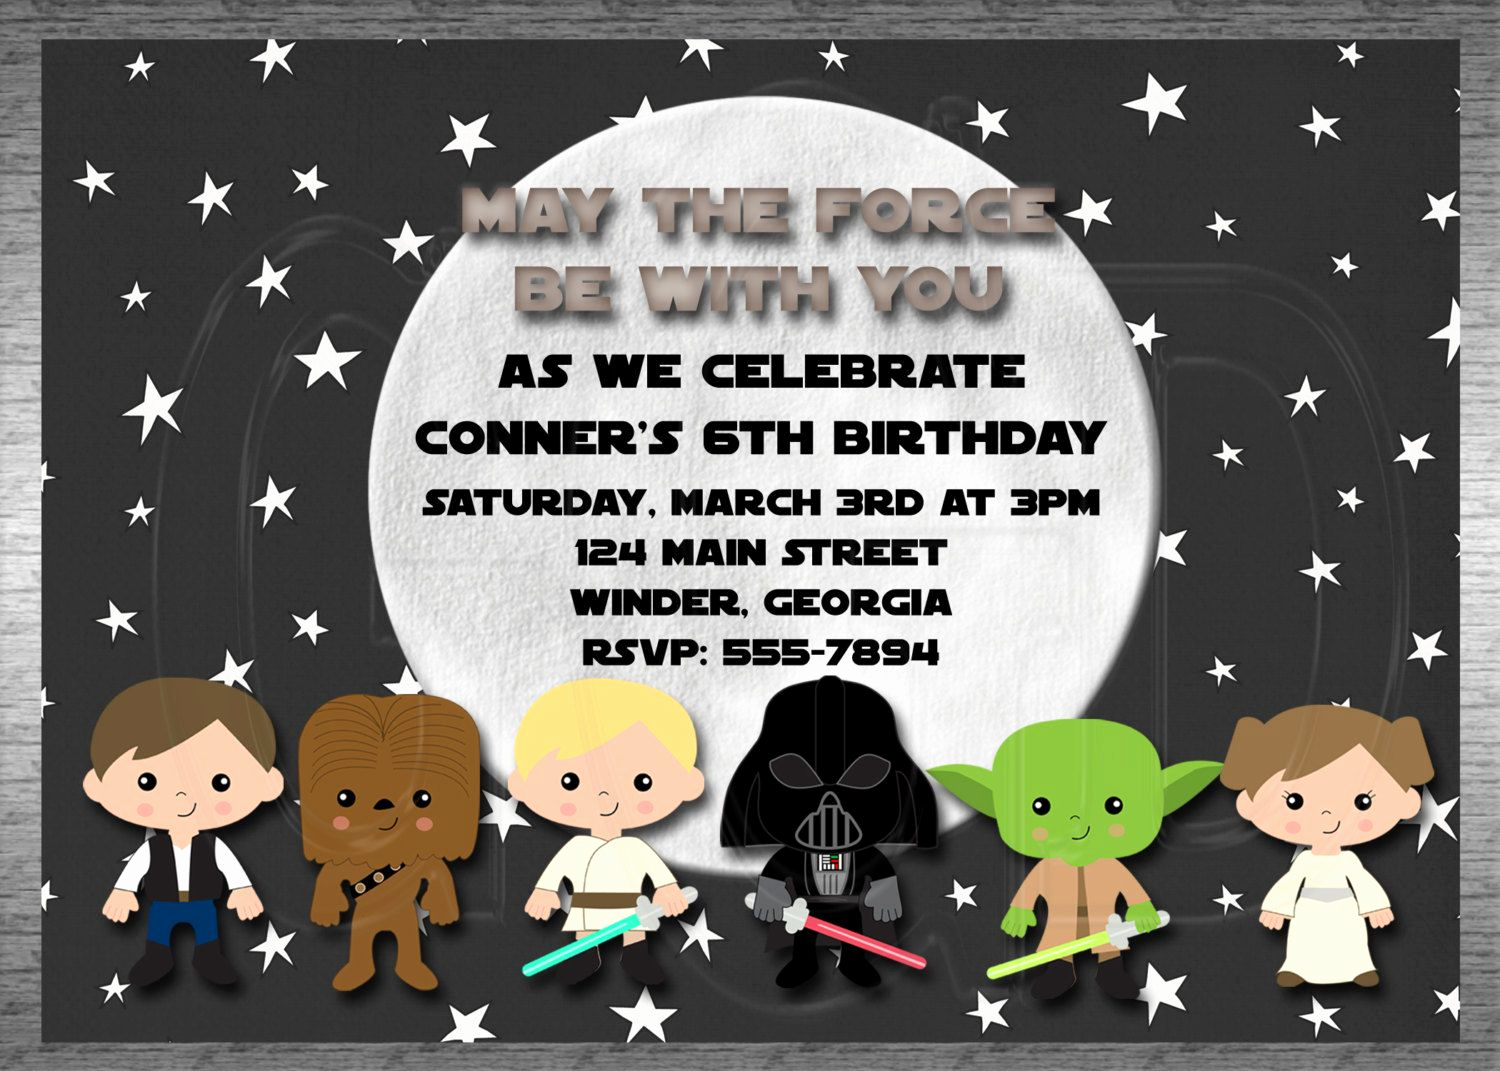 Star Wars Invitation Templates Free Best Of Galaxy Star Wars Invitation Star Wars Birthday Party